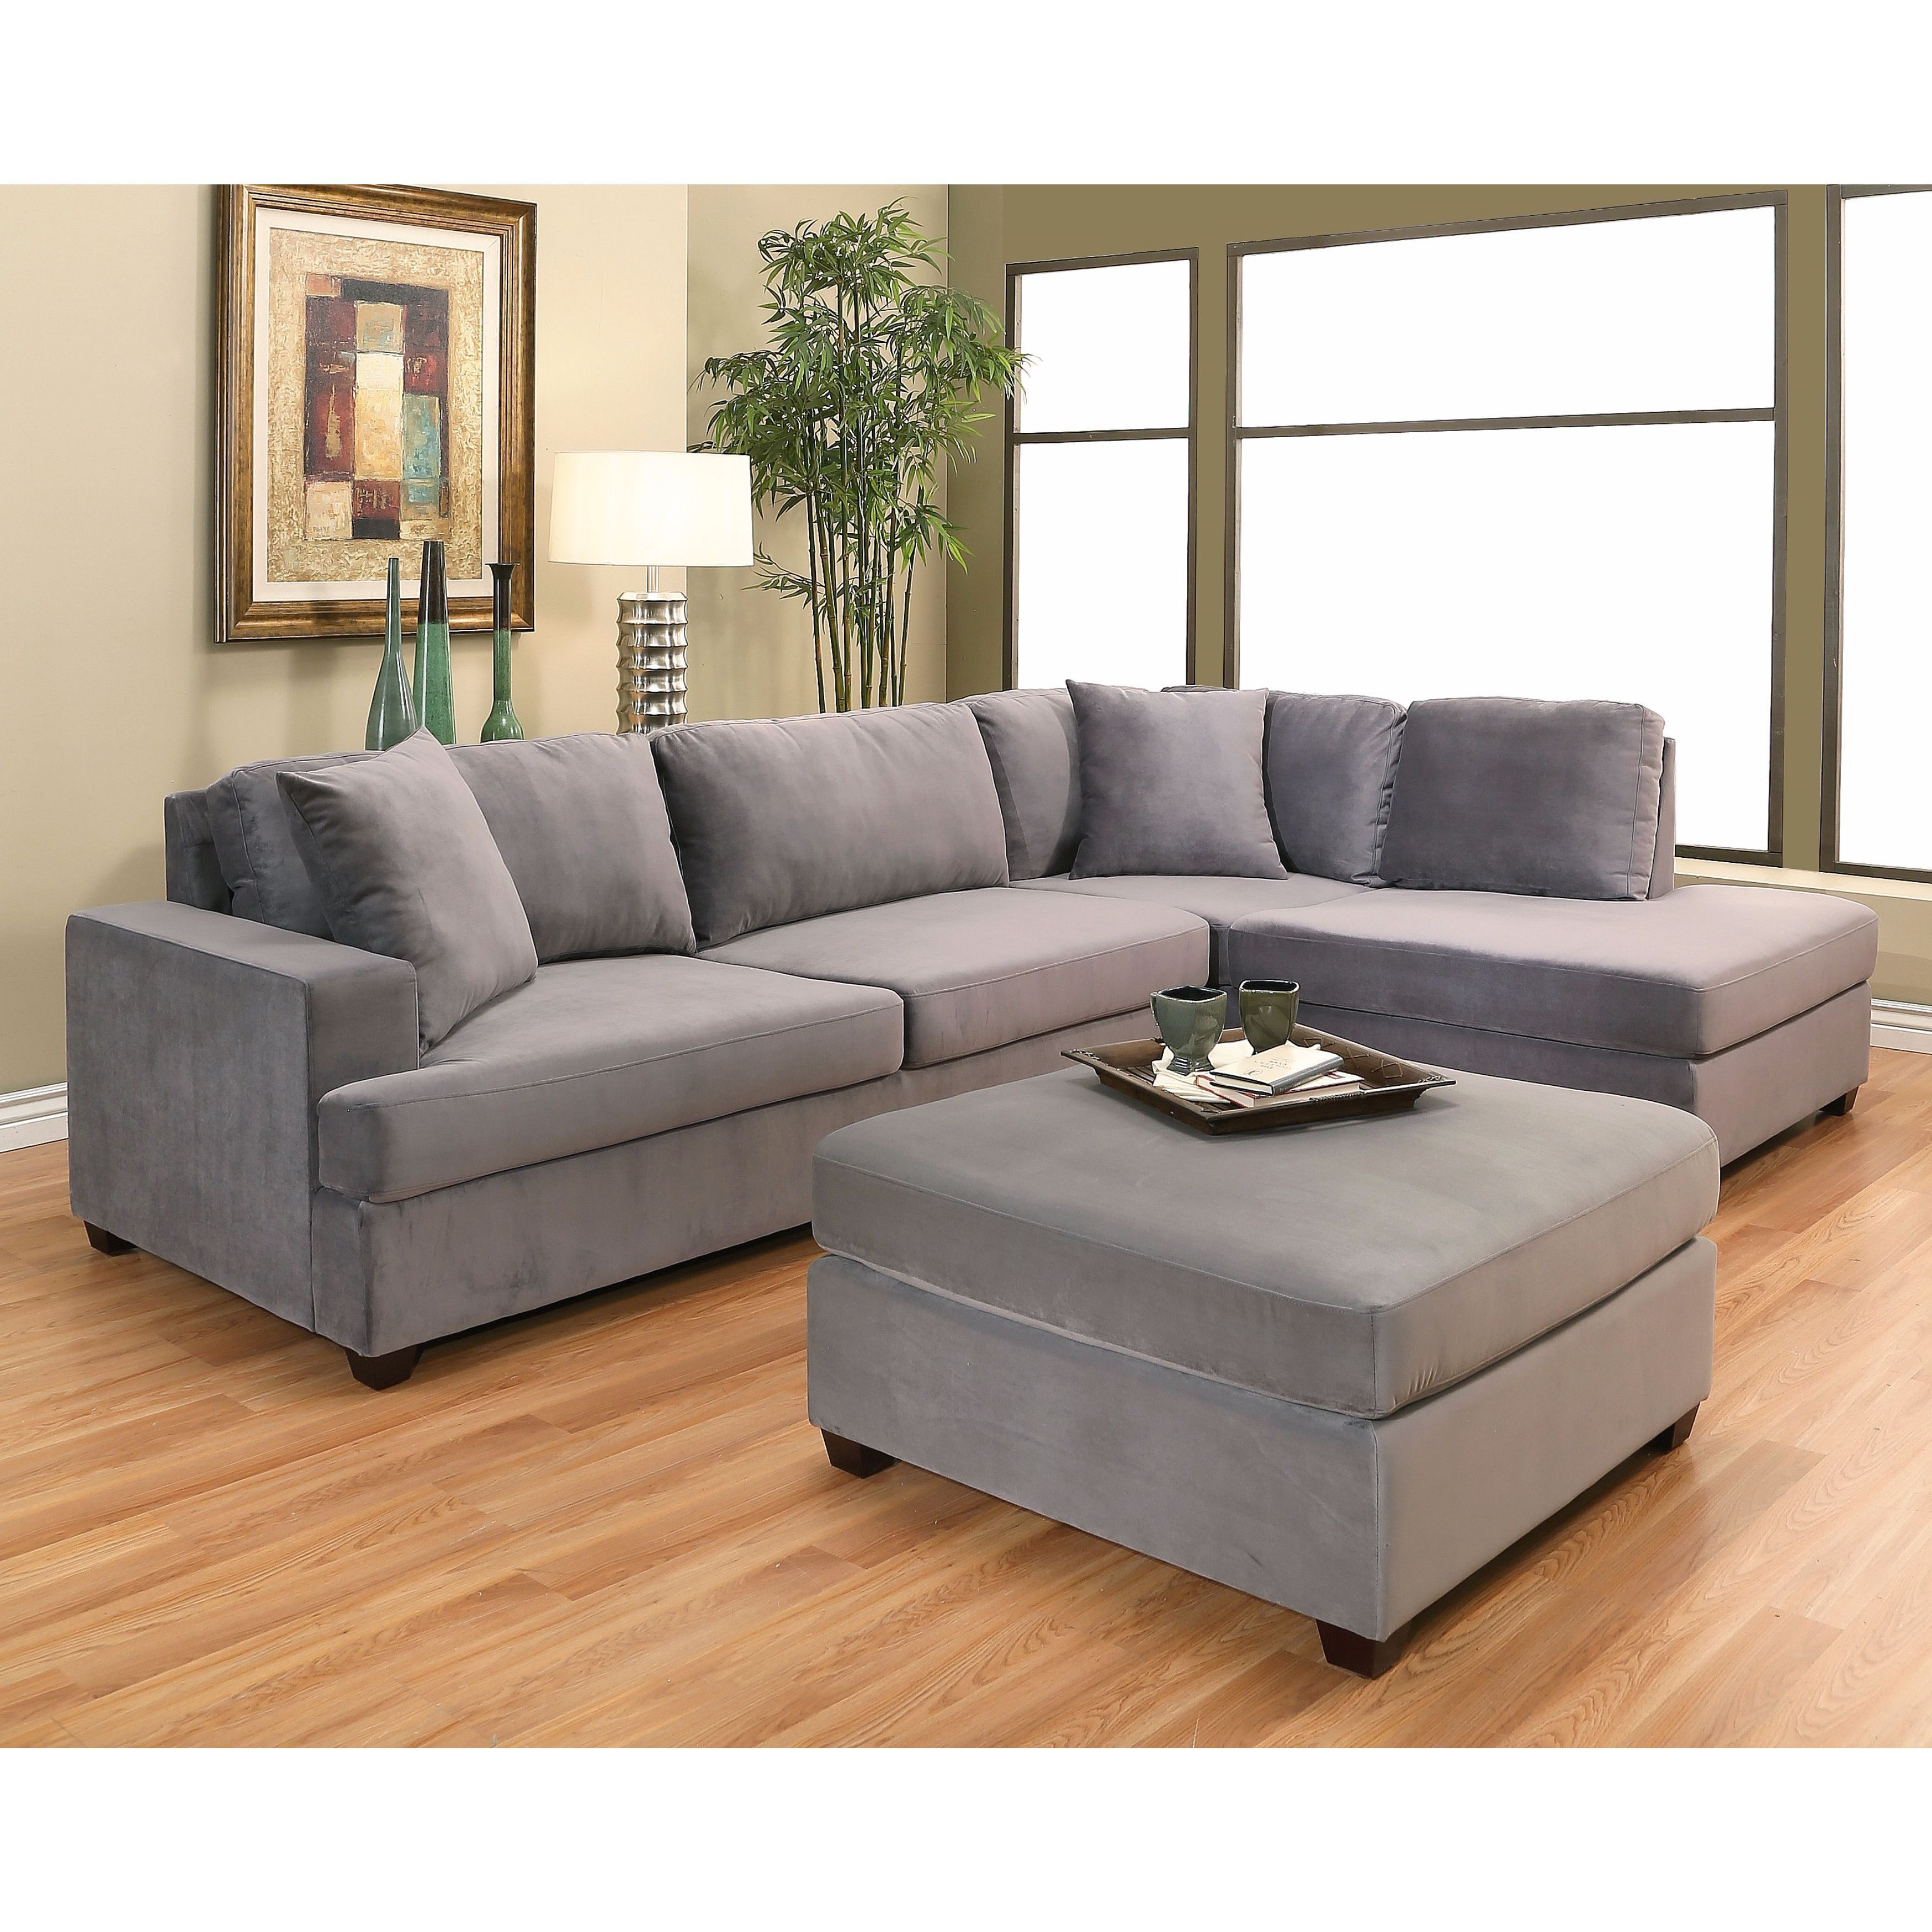 suede living room furniture good colors for grey taupe fabric faux microfiber velvet sectional sofas abbyson vista and ottoman set sofa